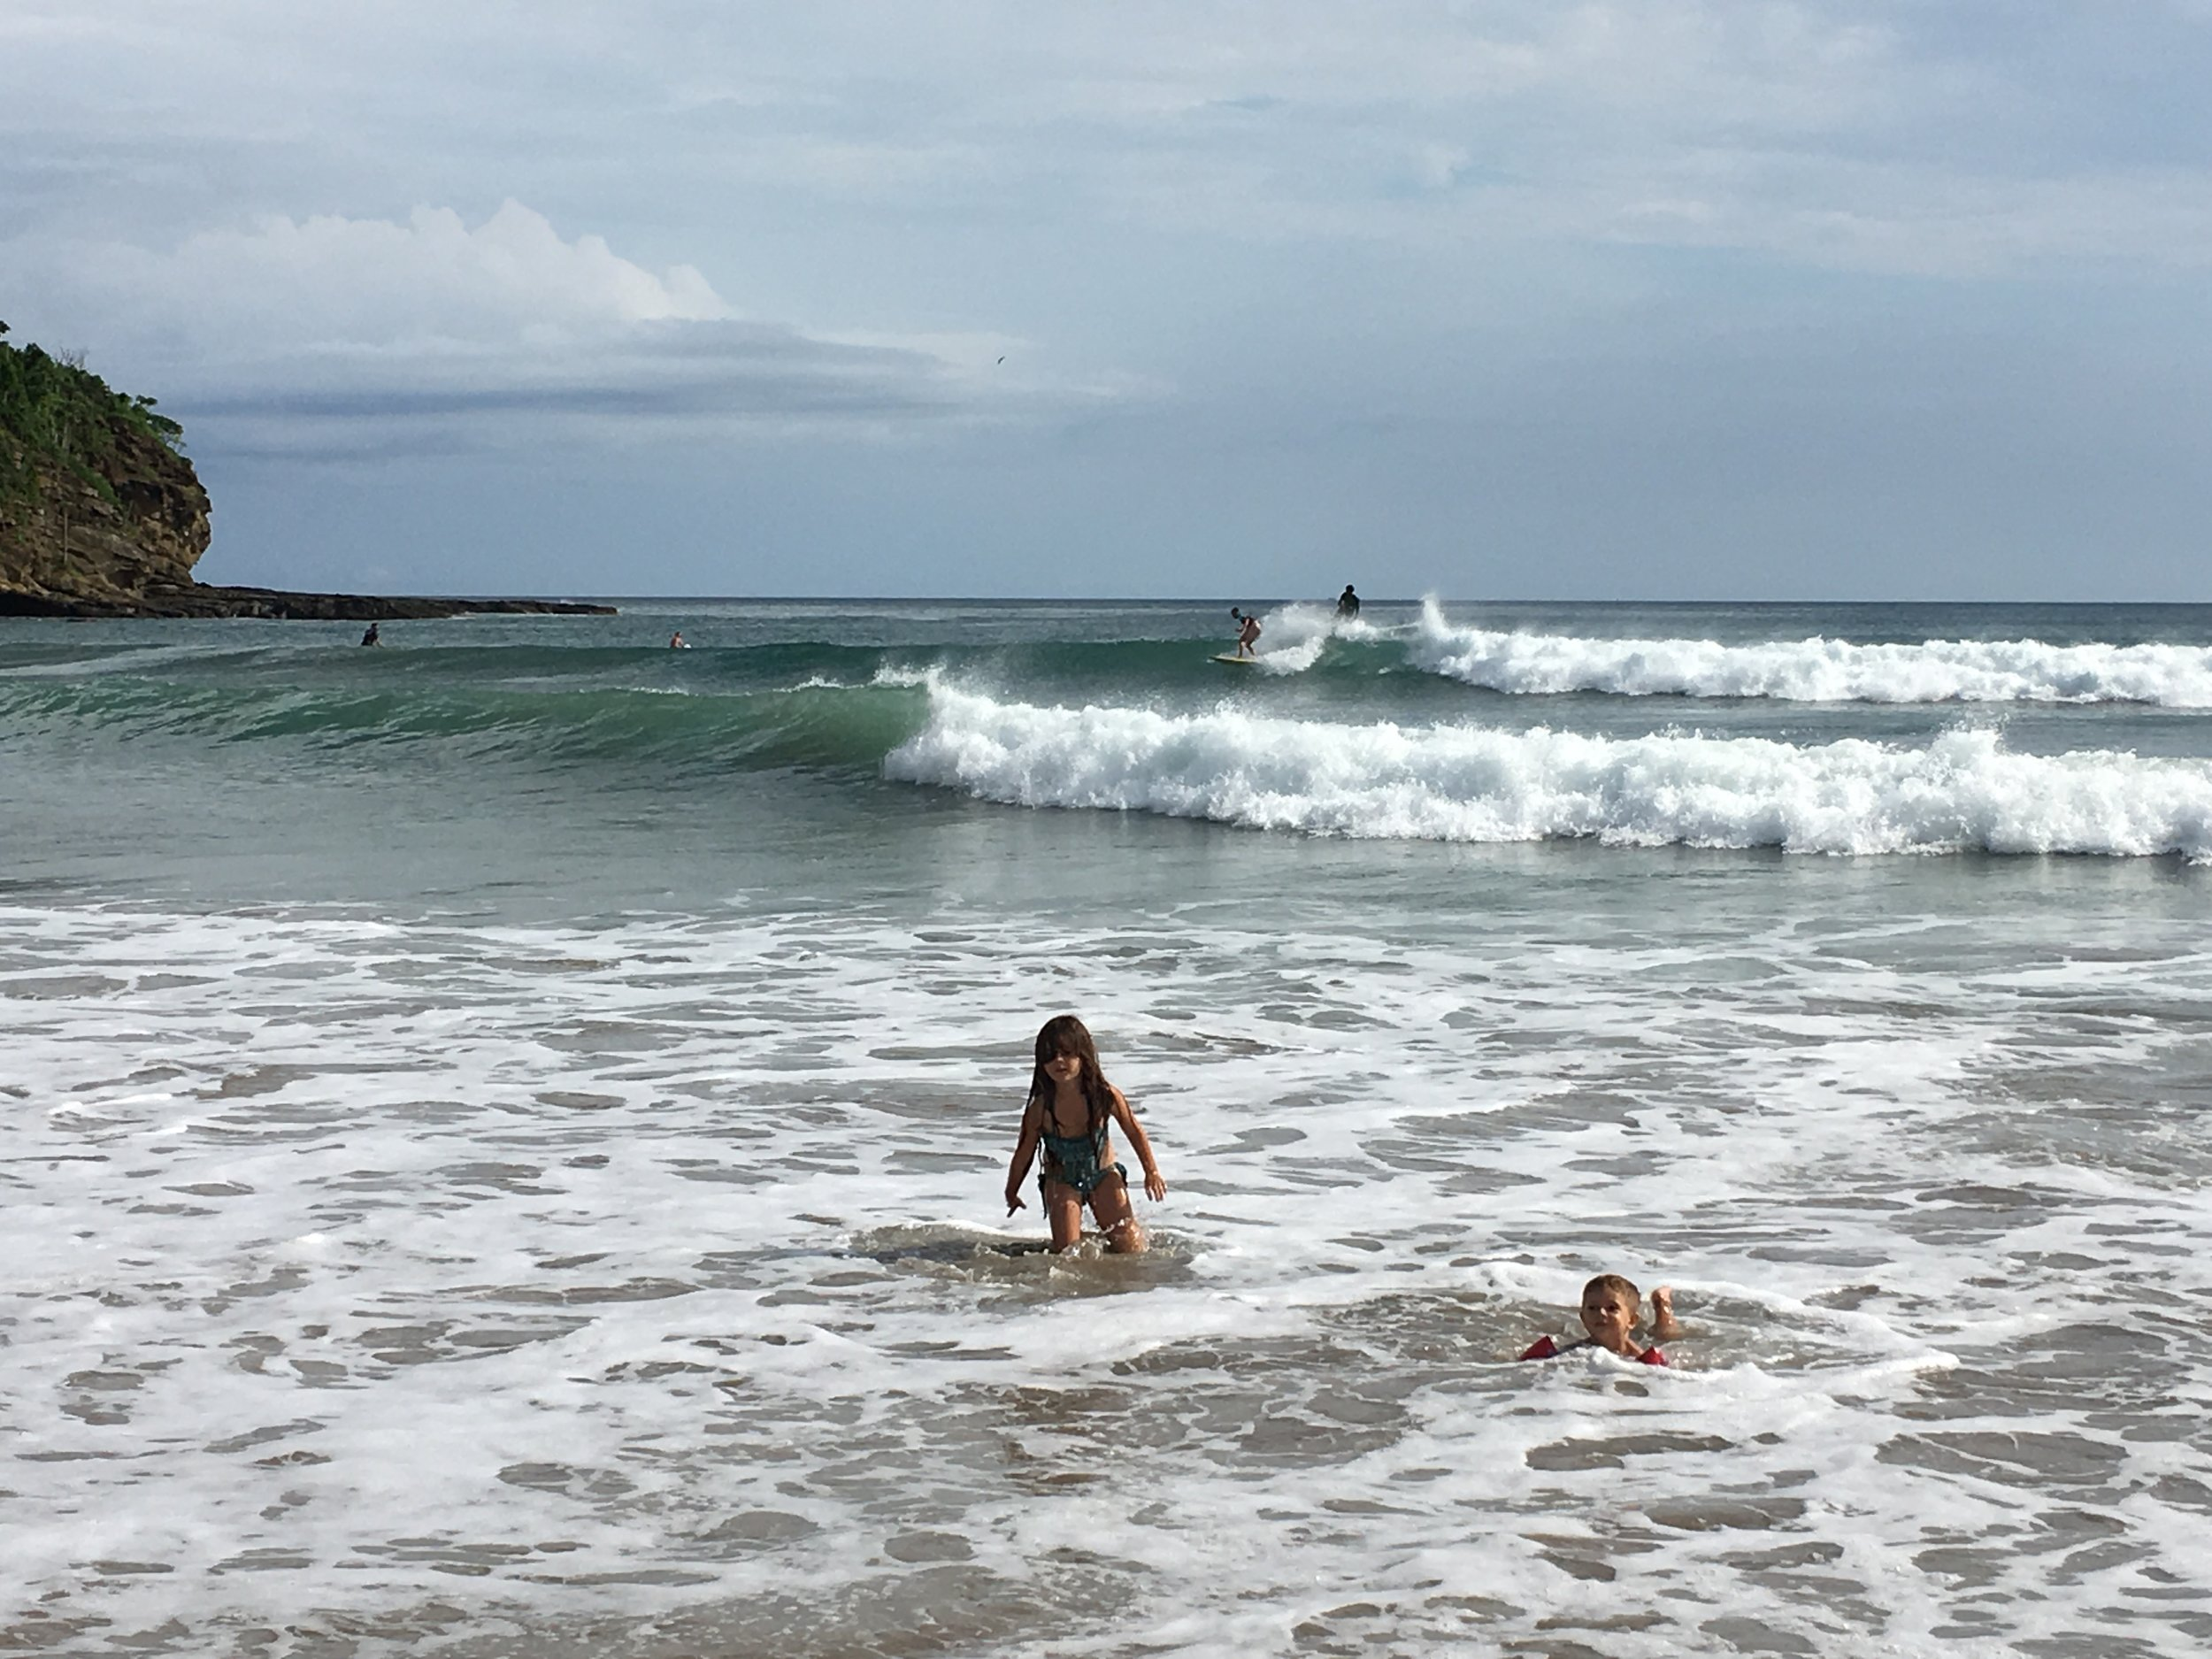 Surfers catching waves and children wading close to shore